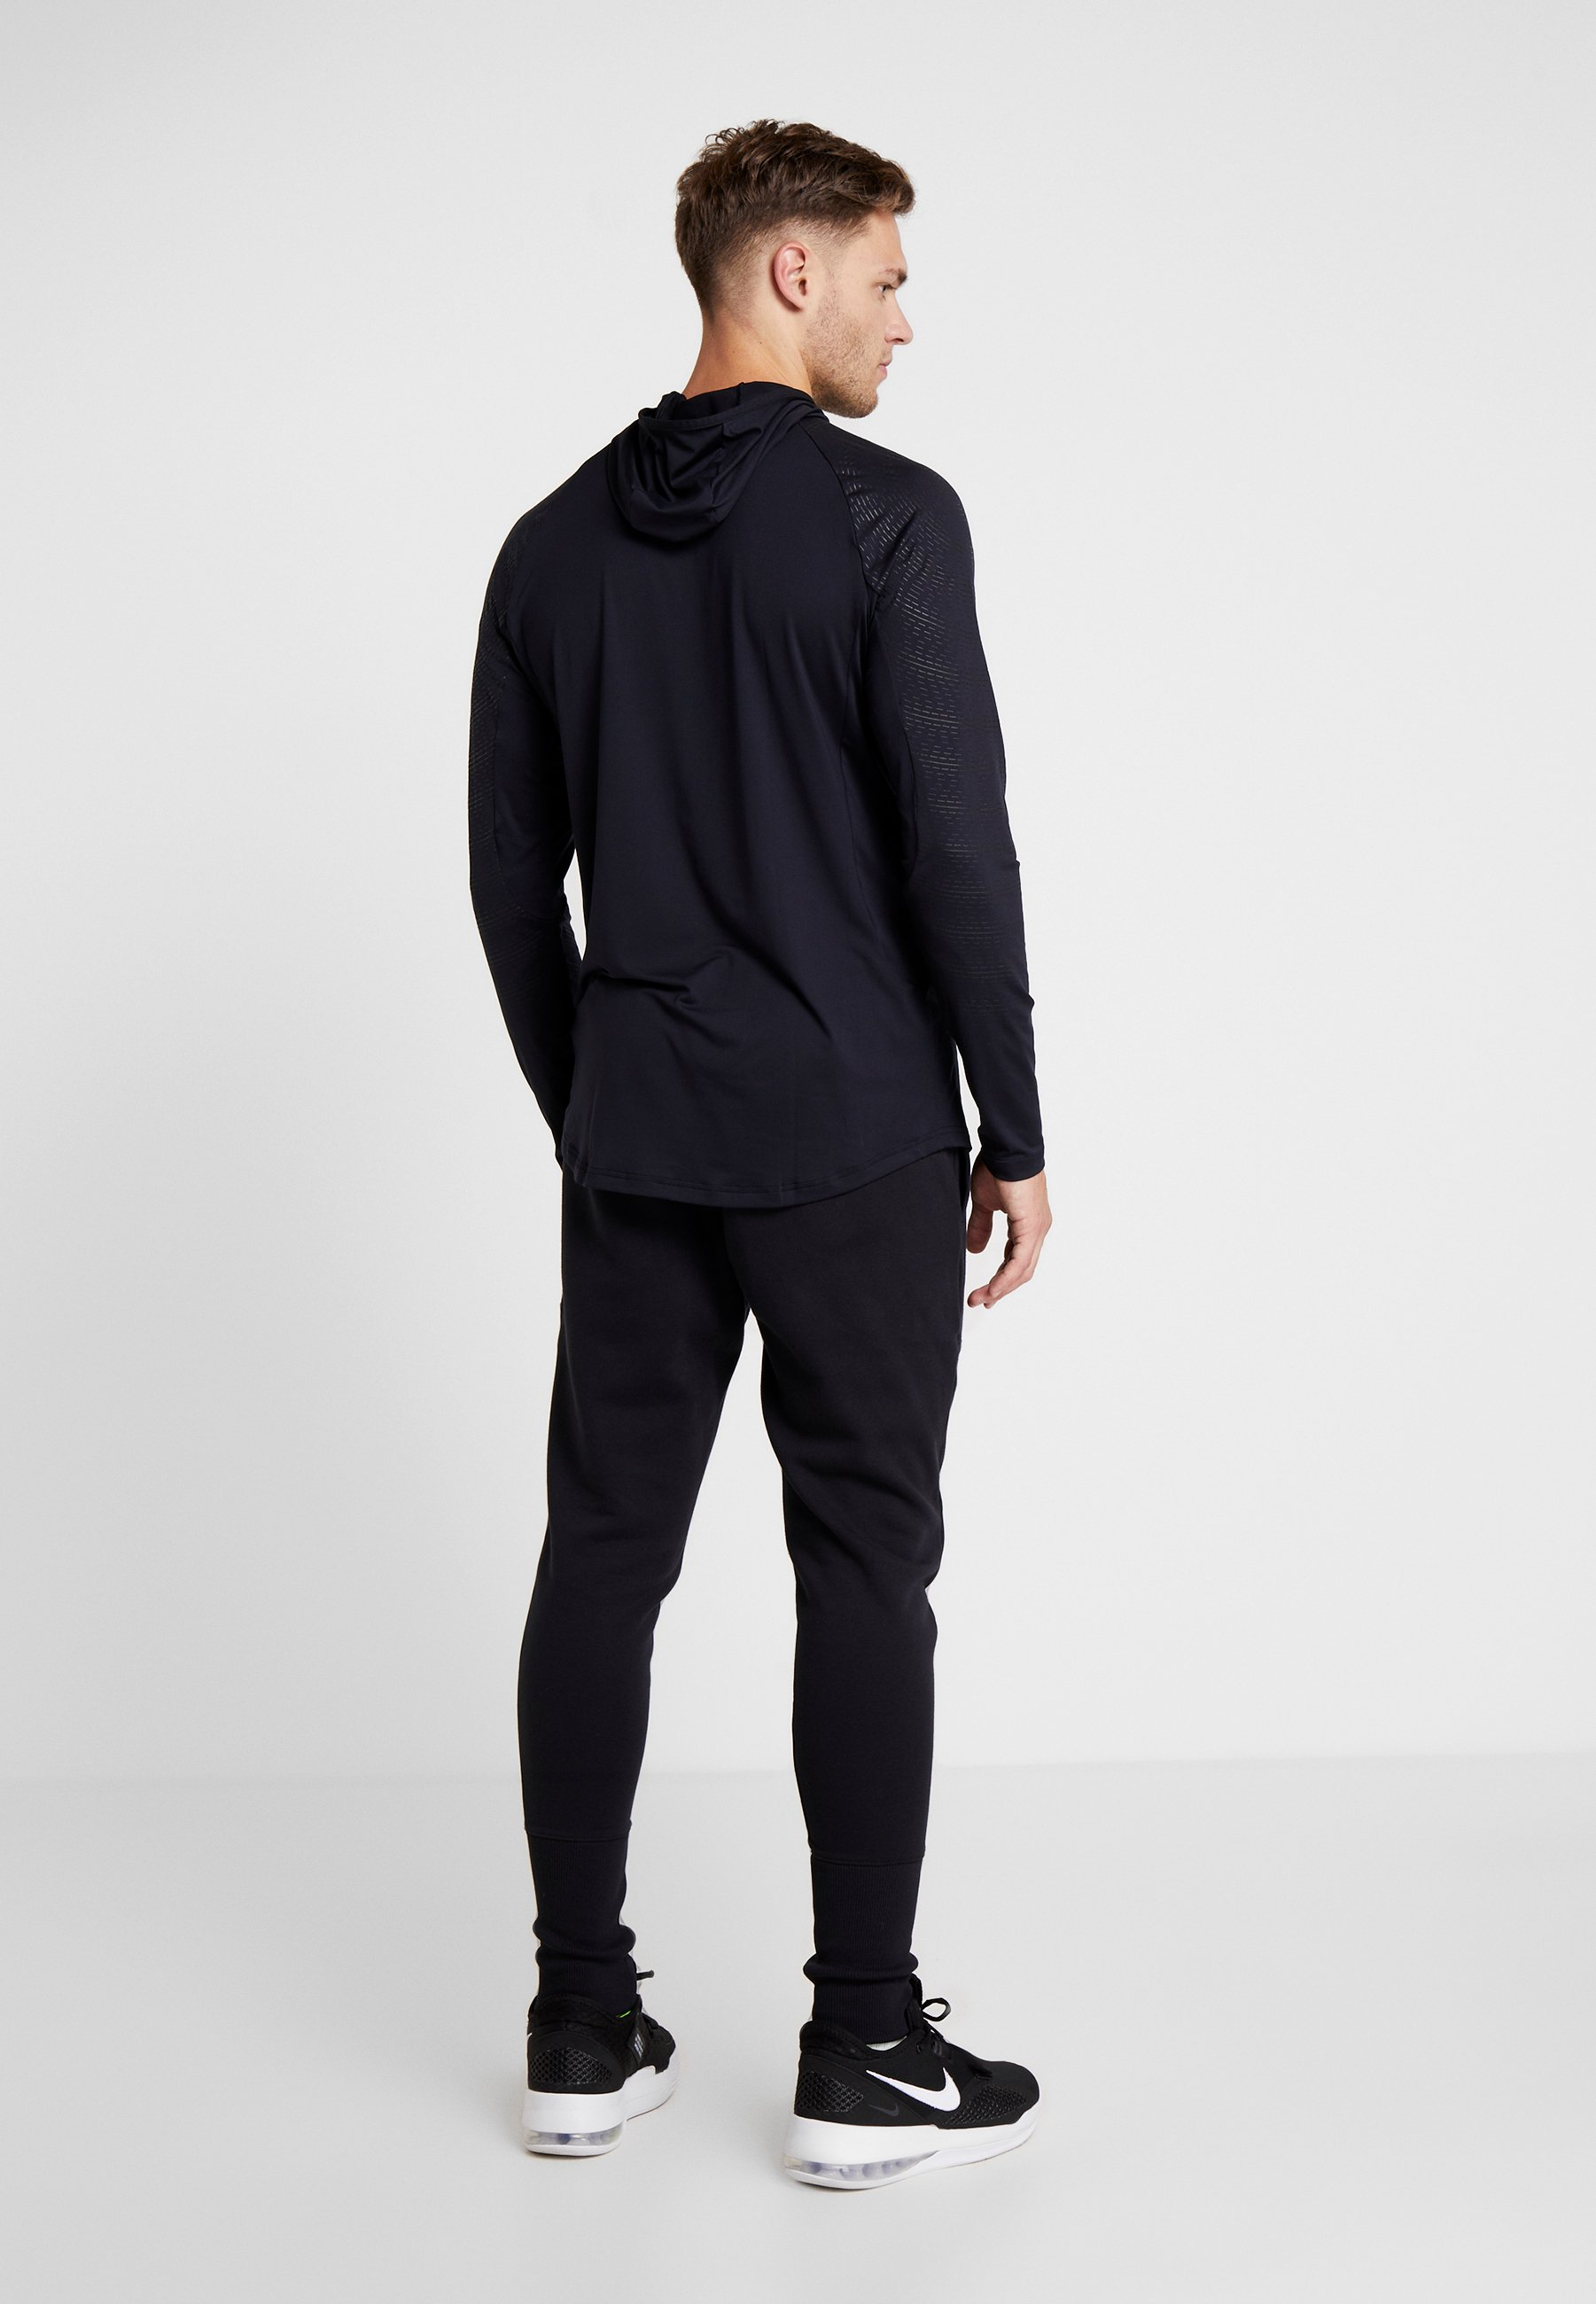 Under Armour Baseline Survêtement JoggerPantalon Black De ash Gray CdBxroe